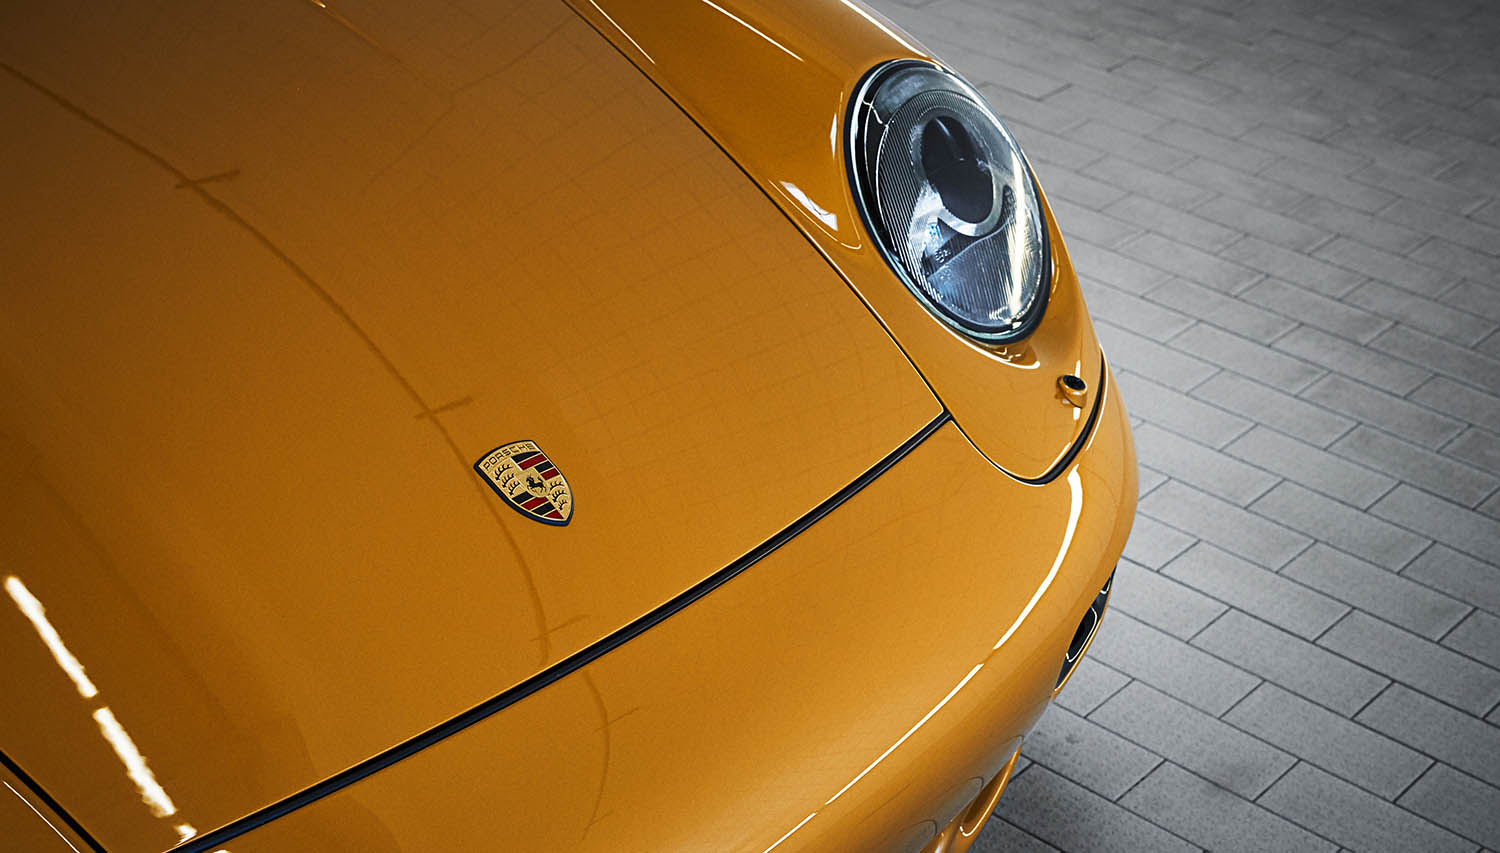 2018-Porsche-911-Turbo--Classic-Series-Project-Gold-_4.jpg